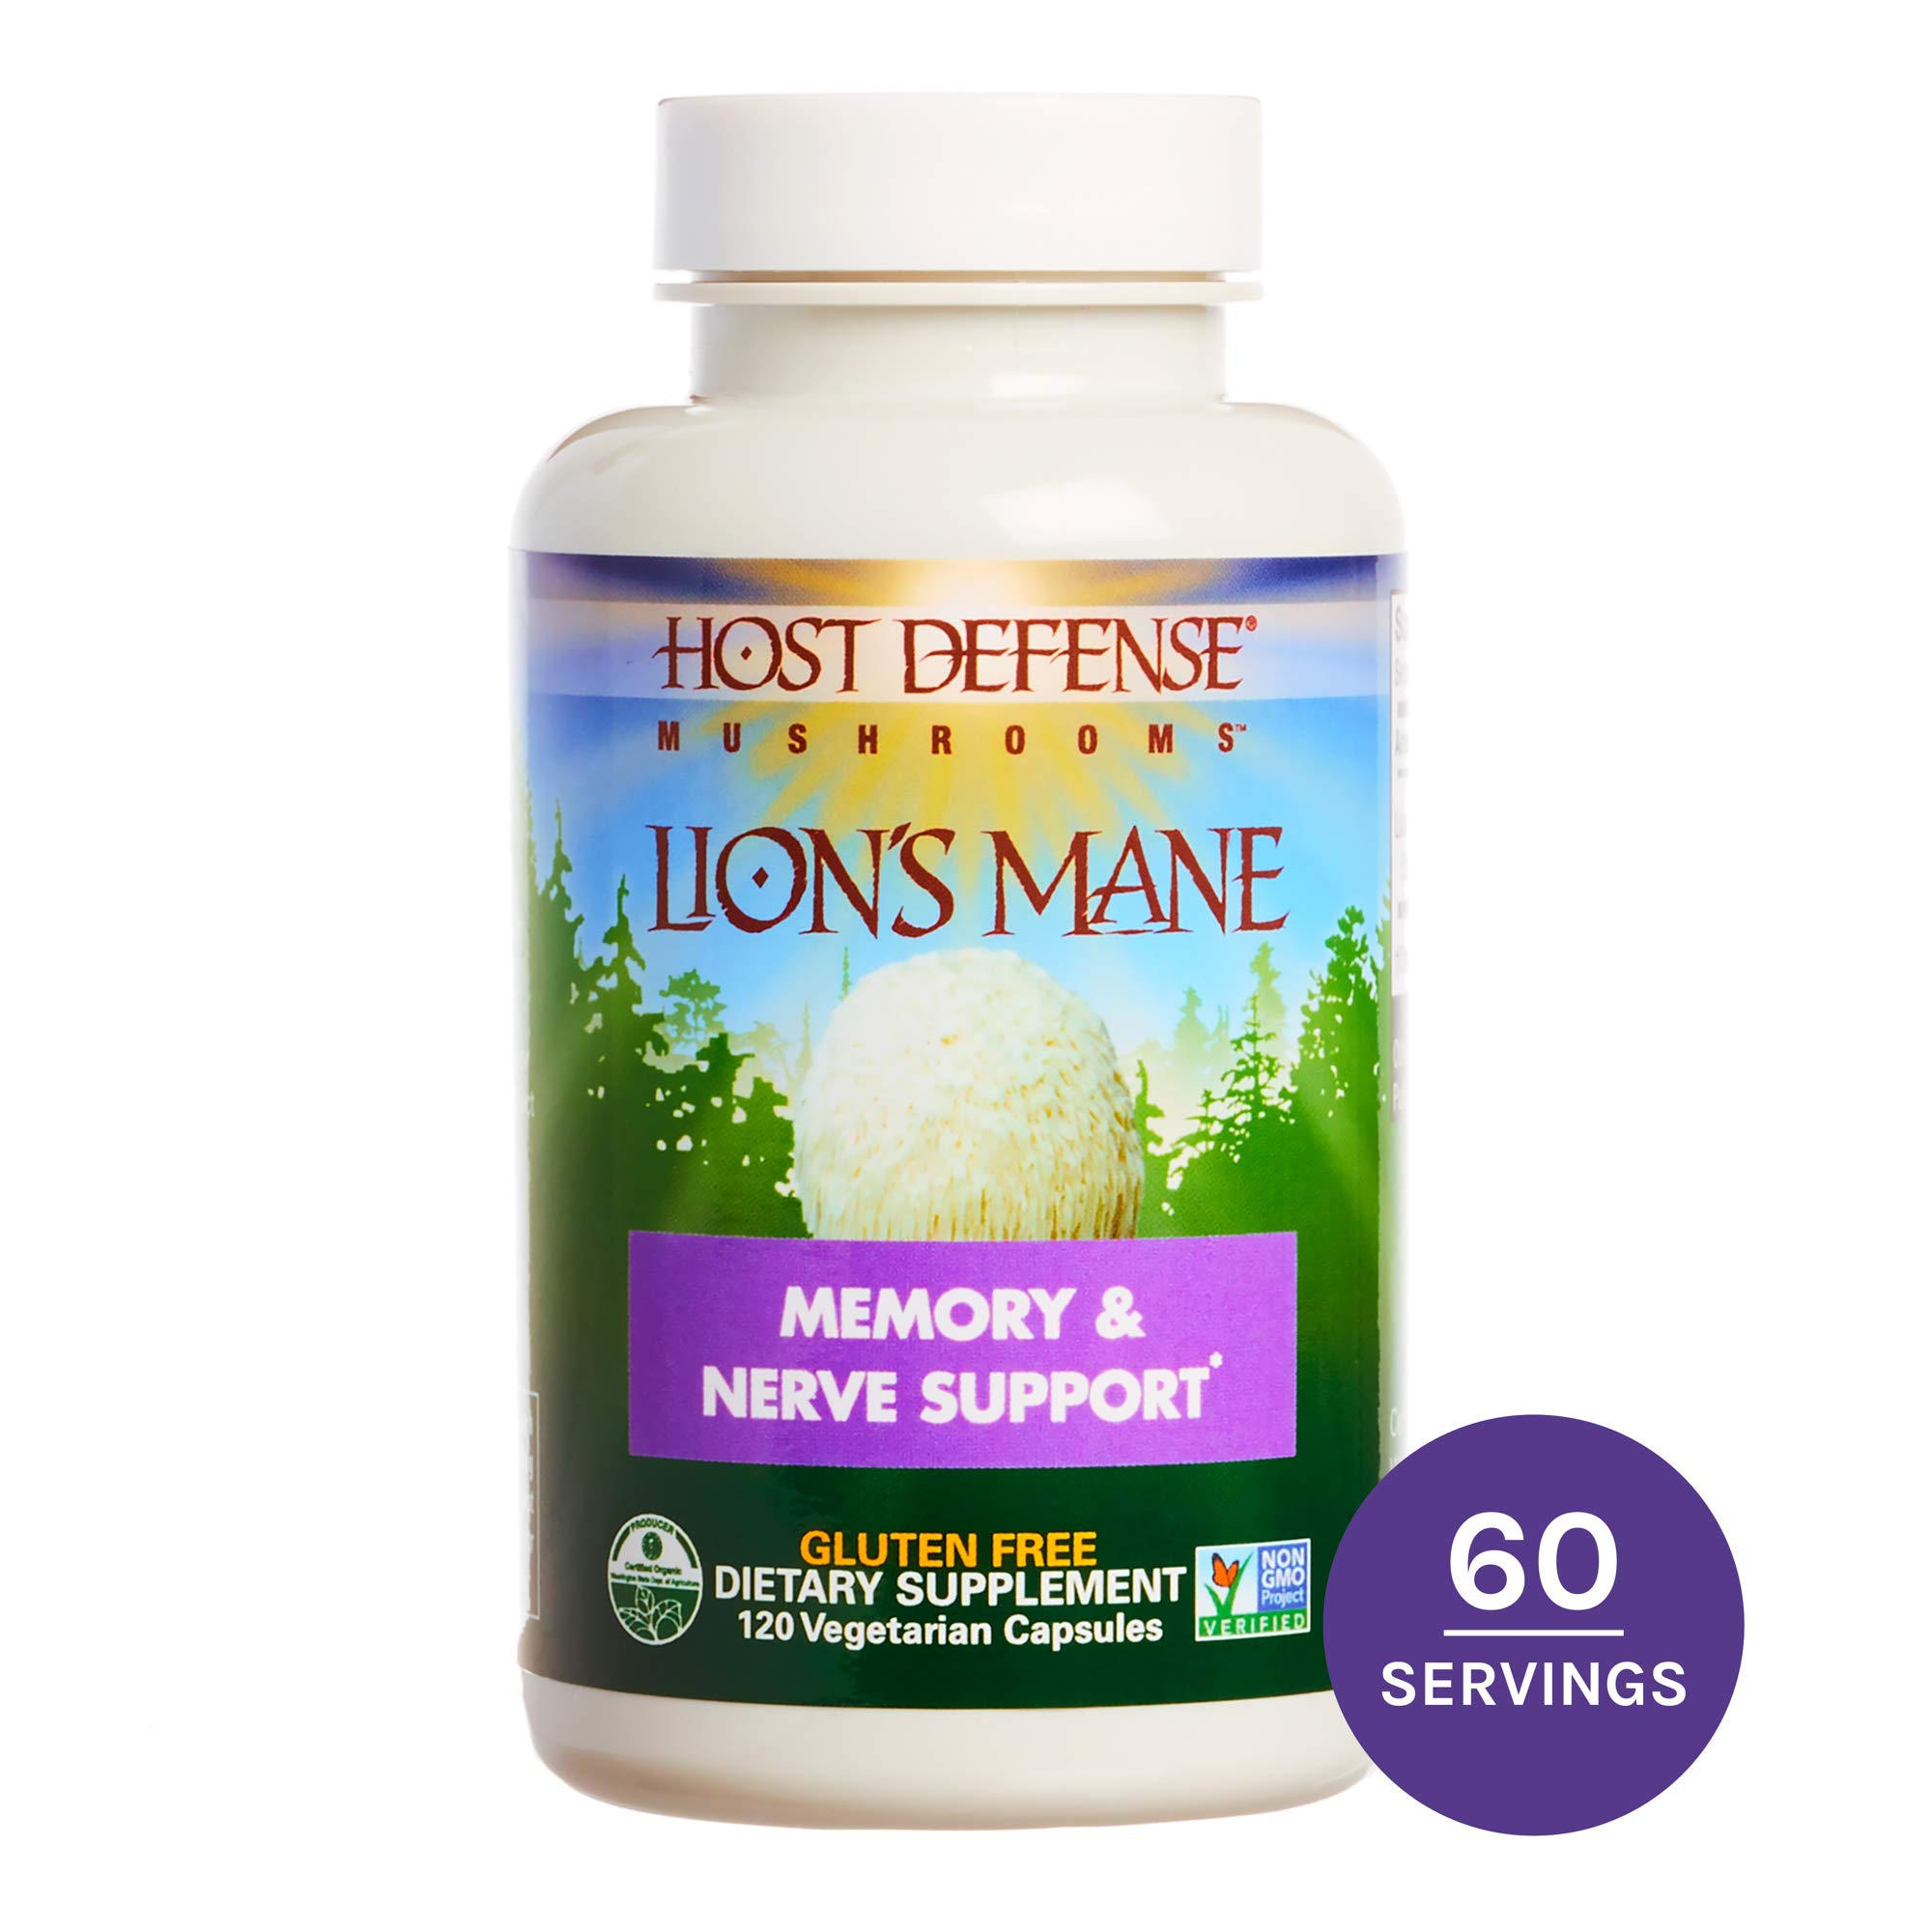 Host Defense, Lion's Mane Capsules, Promotes Mental Clarity, Focus and Memory, Daily Mushroom Supplement, Vegan, Organic, Gluten Free, 120 Capsules (60 Servings) by Host Defense